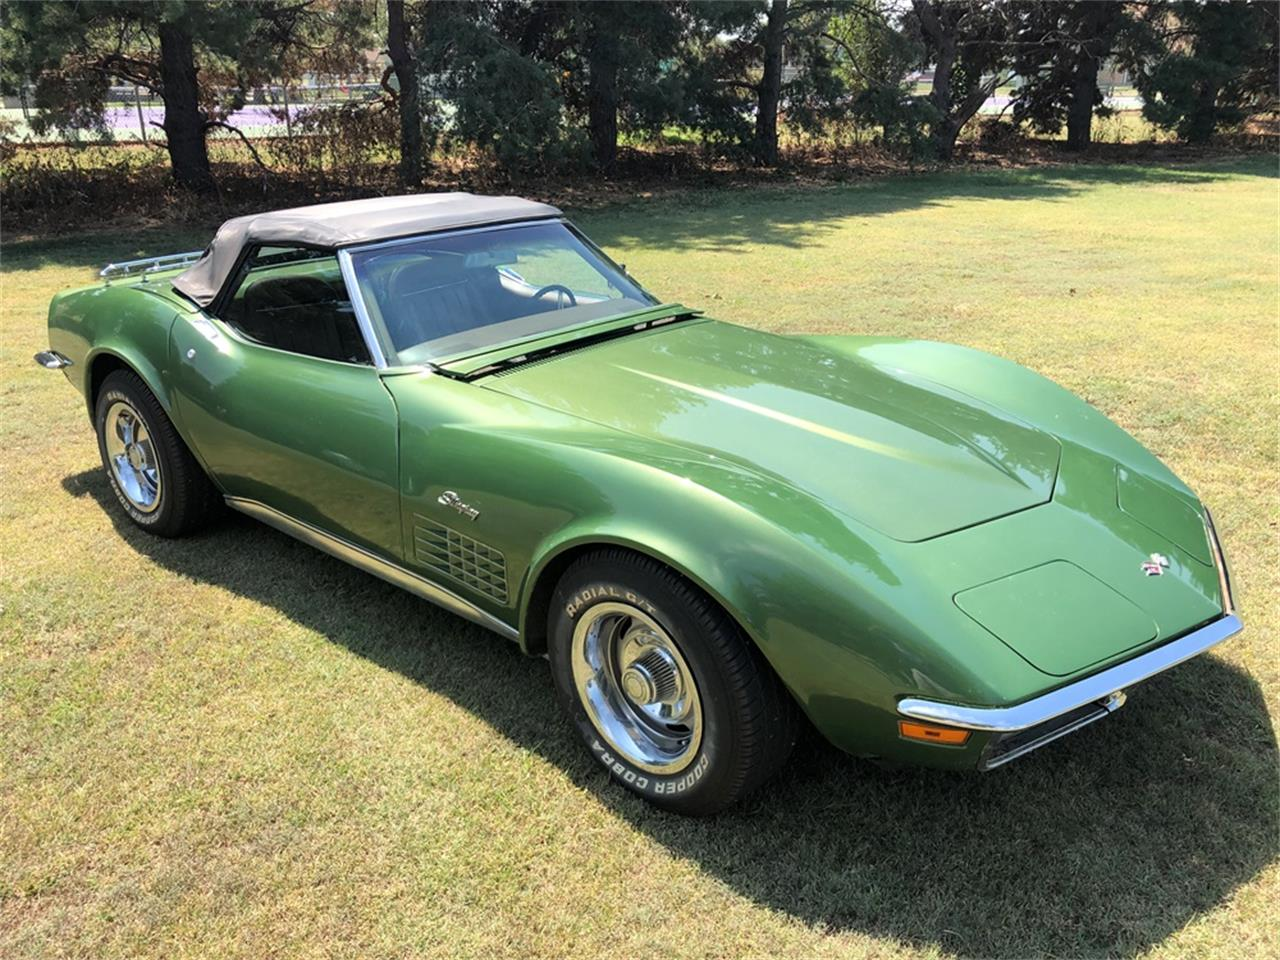 1971 Chevrolet Corvette Stingray (CC-1253359) for sale in Great Bend, Kansas